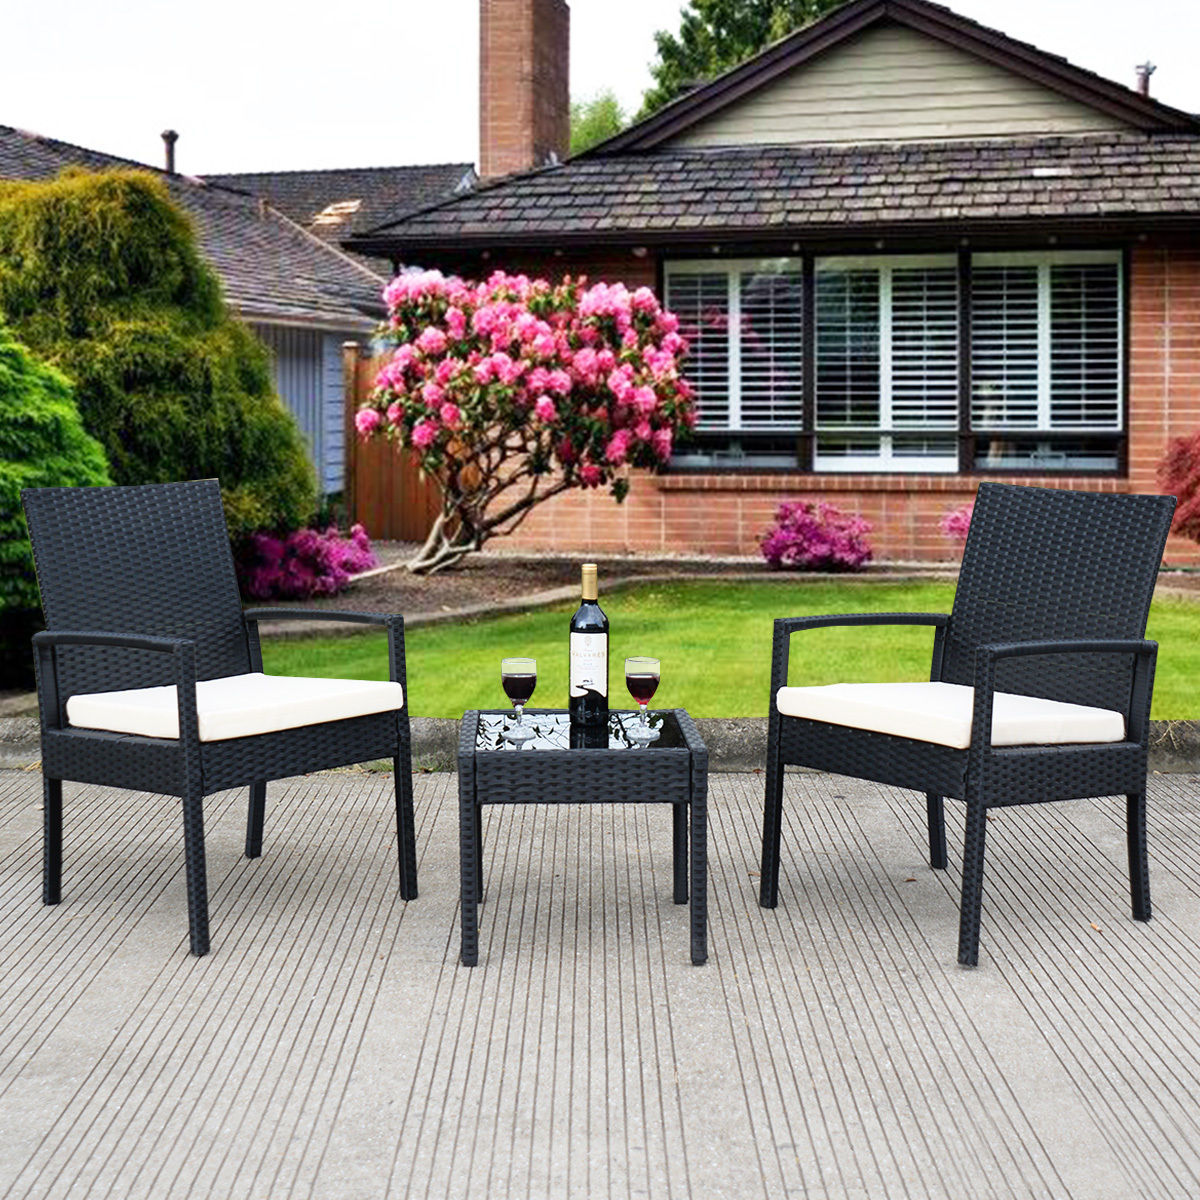 DEAL!!! 3 PS Outdoor Rattan Patio Furniture Set Backyard Garden Furniture